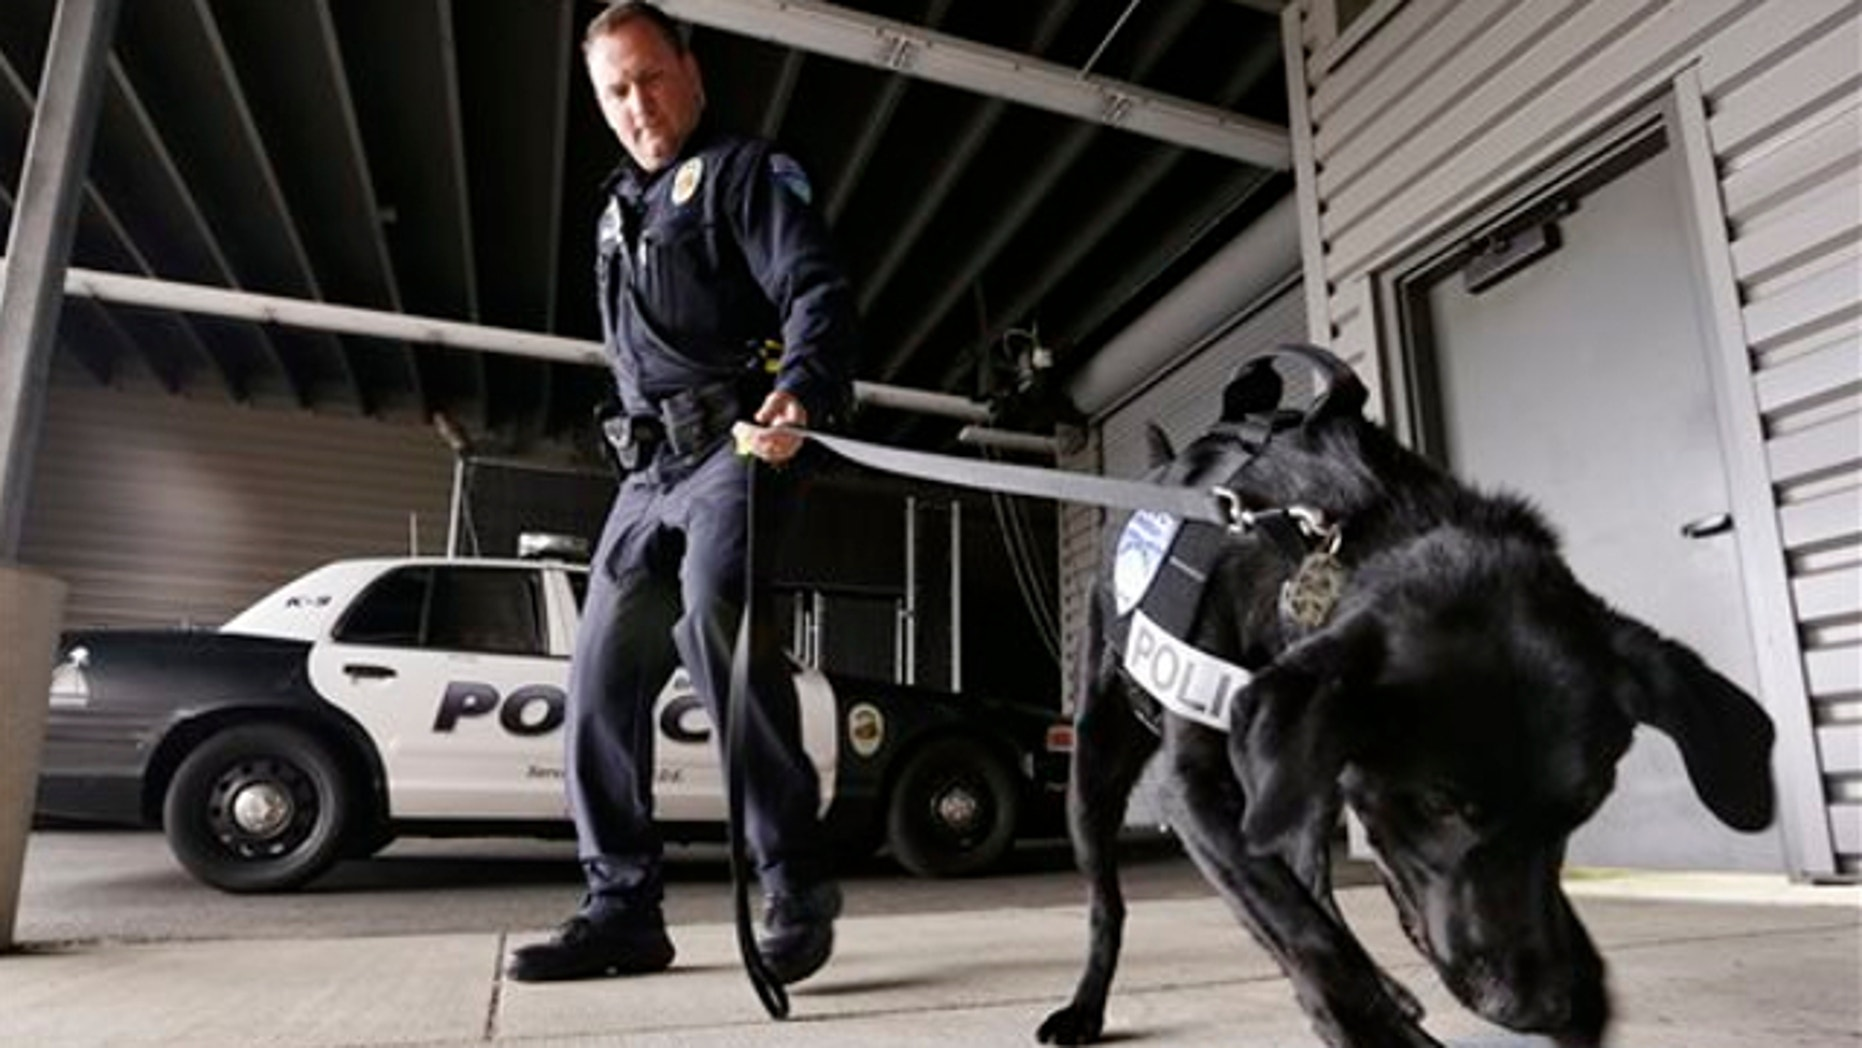 May 30, 2013: Drug-sniffing police dog Dusty is watched by handler Officer Duke Roessel as the K-9 begins to dig at a box after successfully located a stash of heroin during a training session at the police station in Bremerton, Wash.